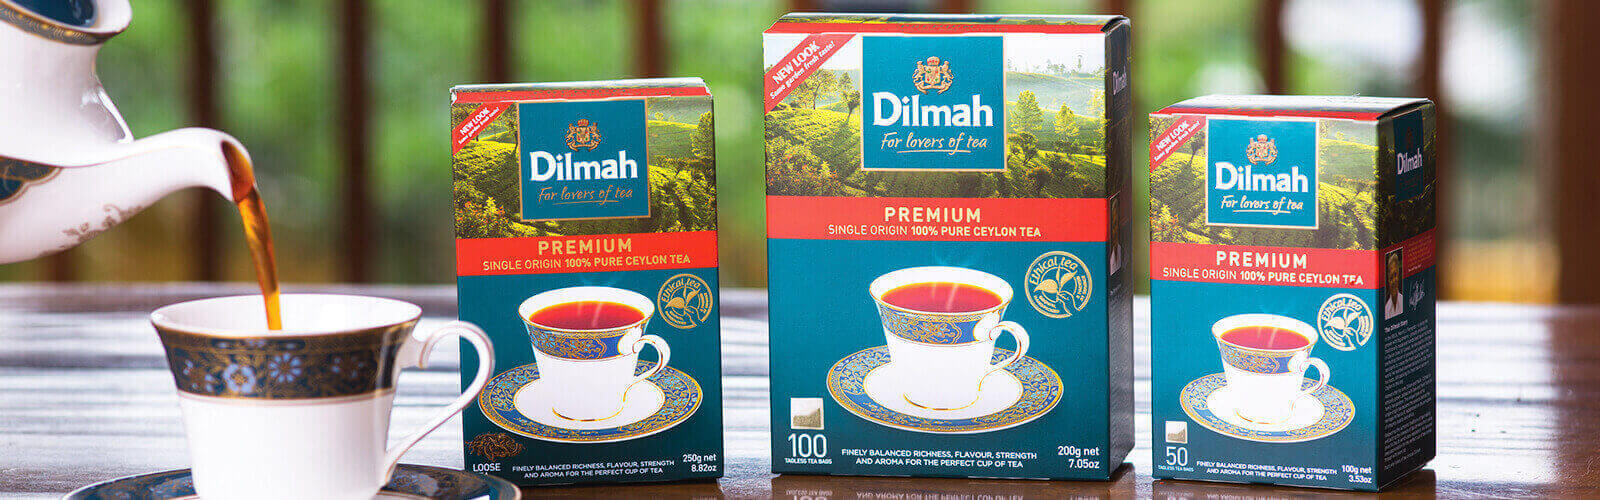 New zealand brands of tea - Dilmah Tea Inspired